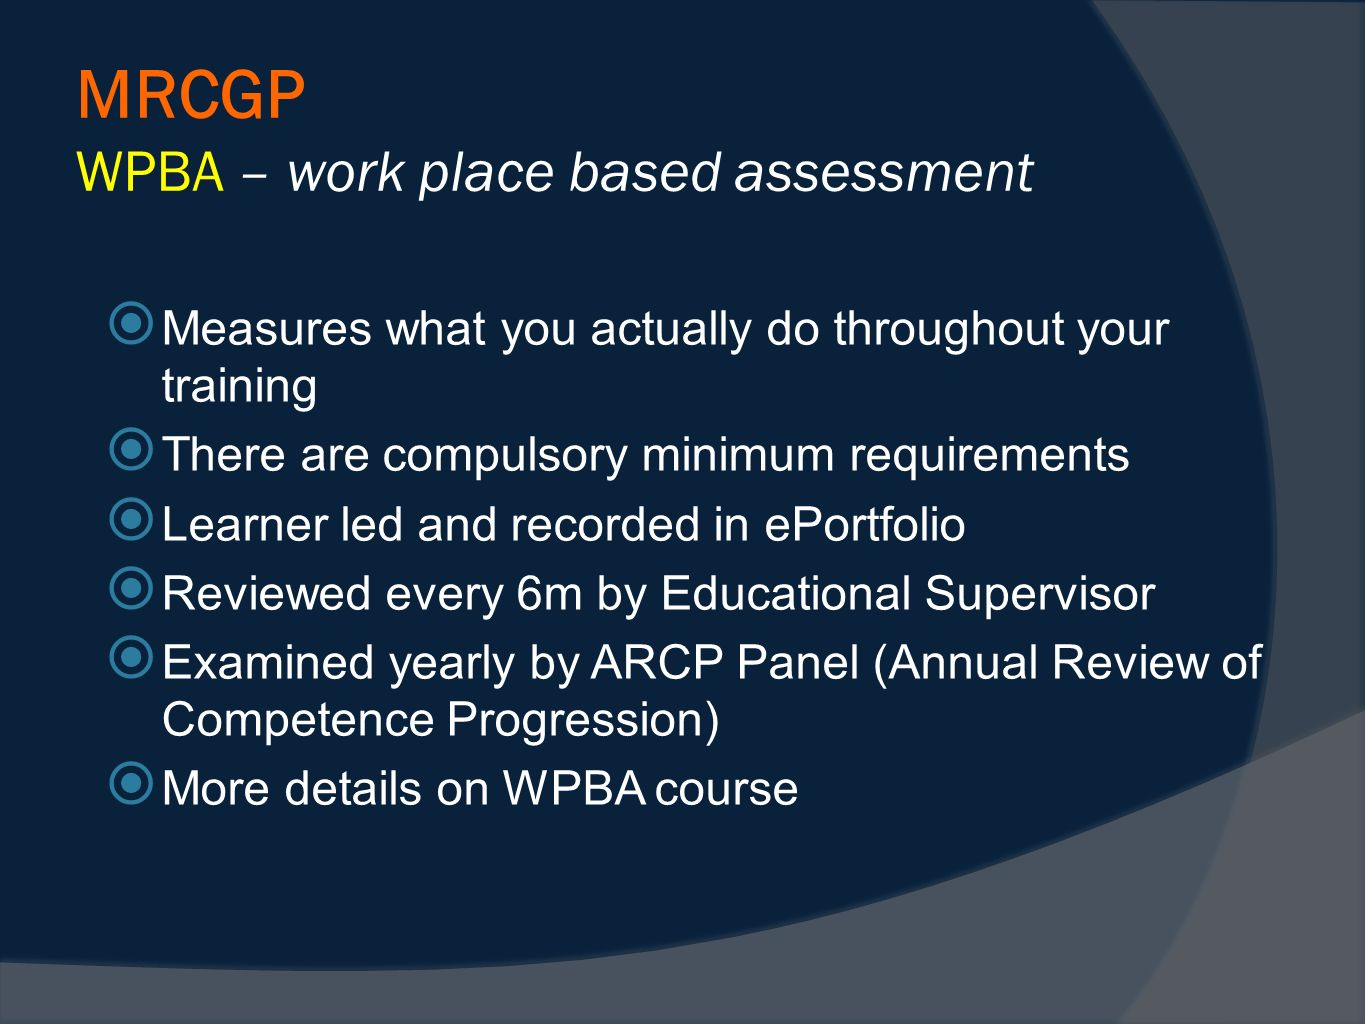 MRCGP WPBA – work place based assessment Measures what you actually do throughout your training There are compulsory minimum requirements Learner led and recorded in ePortfolio Reviewed every 6m by Educational Supervisor Examined yearly by ARCP Panel (Annual Review of Competence Progression) More details on WPBA course